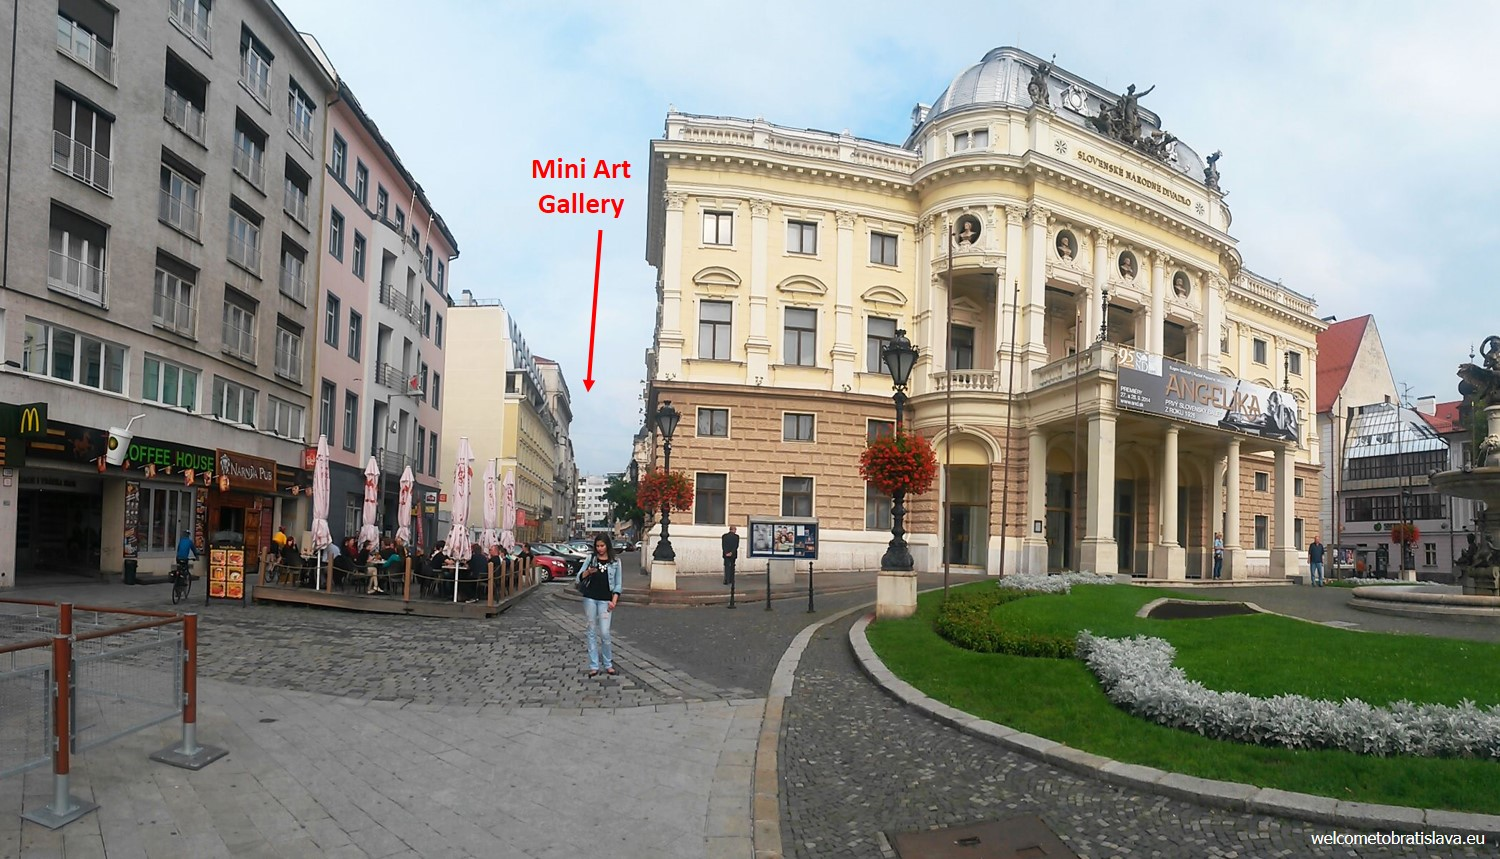 Mini Art Gallery can be found in a small street right next to the Slovak National Theater